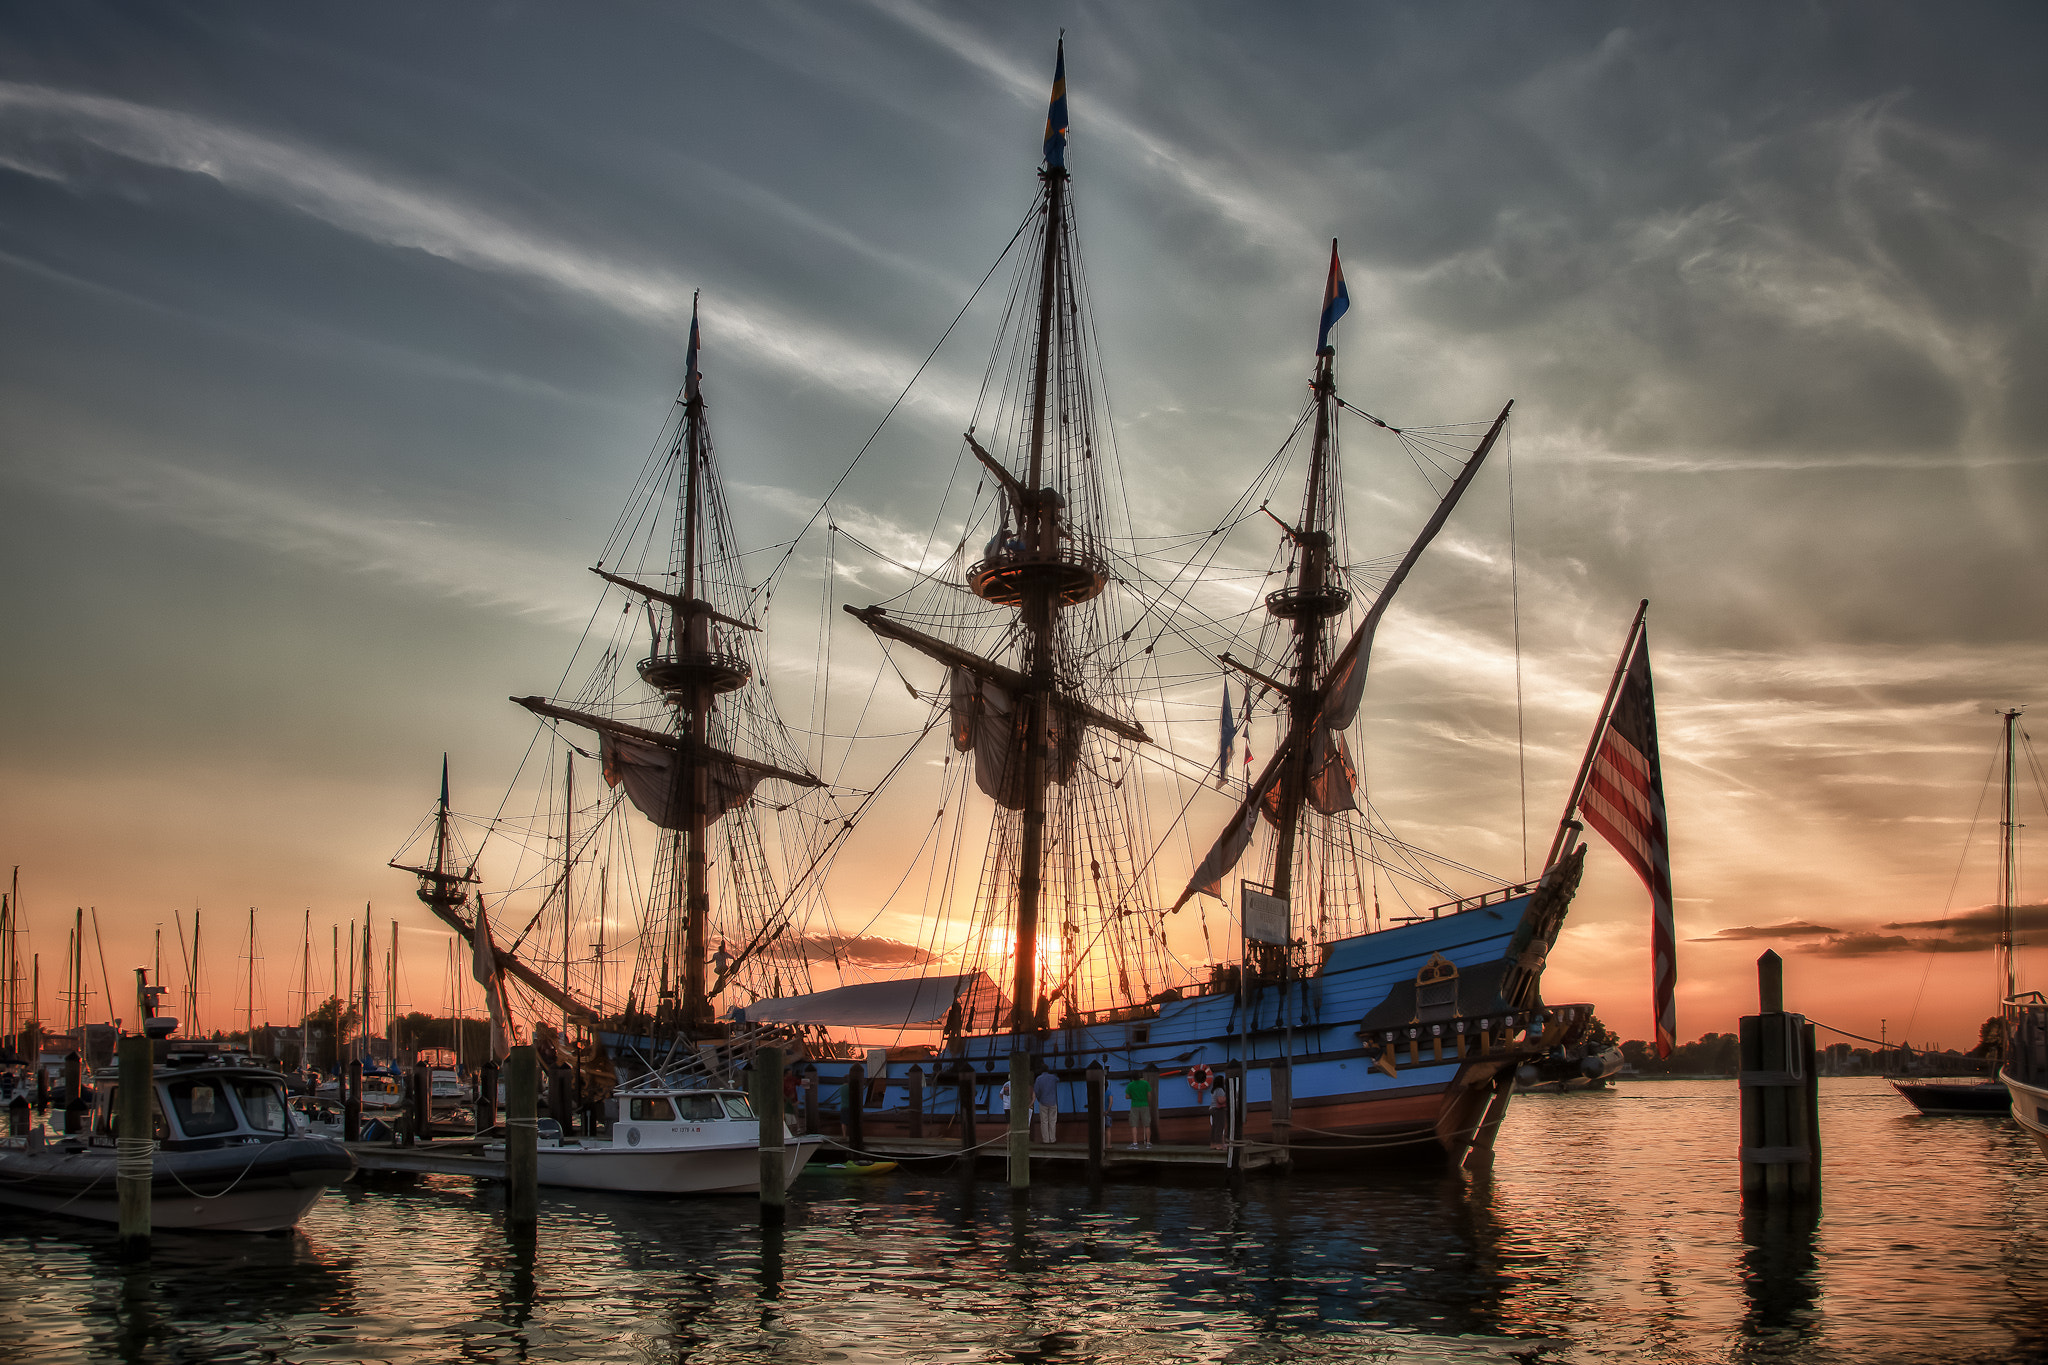 Photograph Kalmar Nyckel - Dockside by Dave Wright on 500px